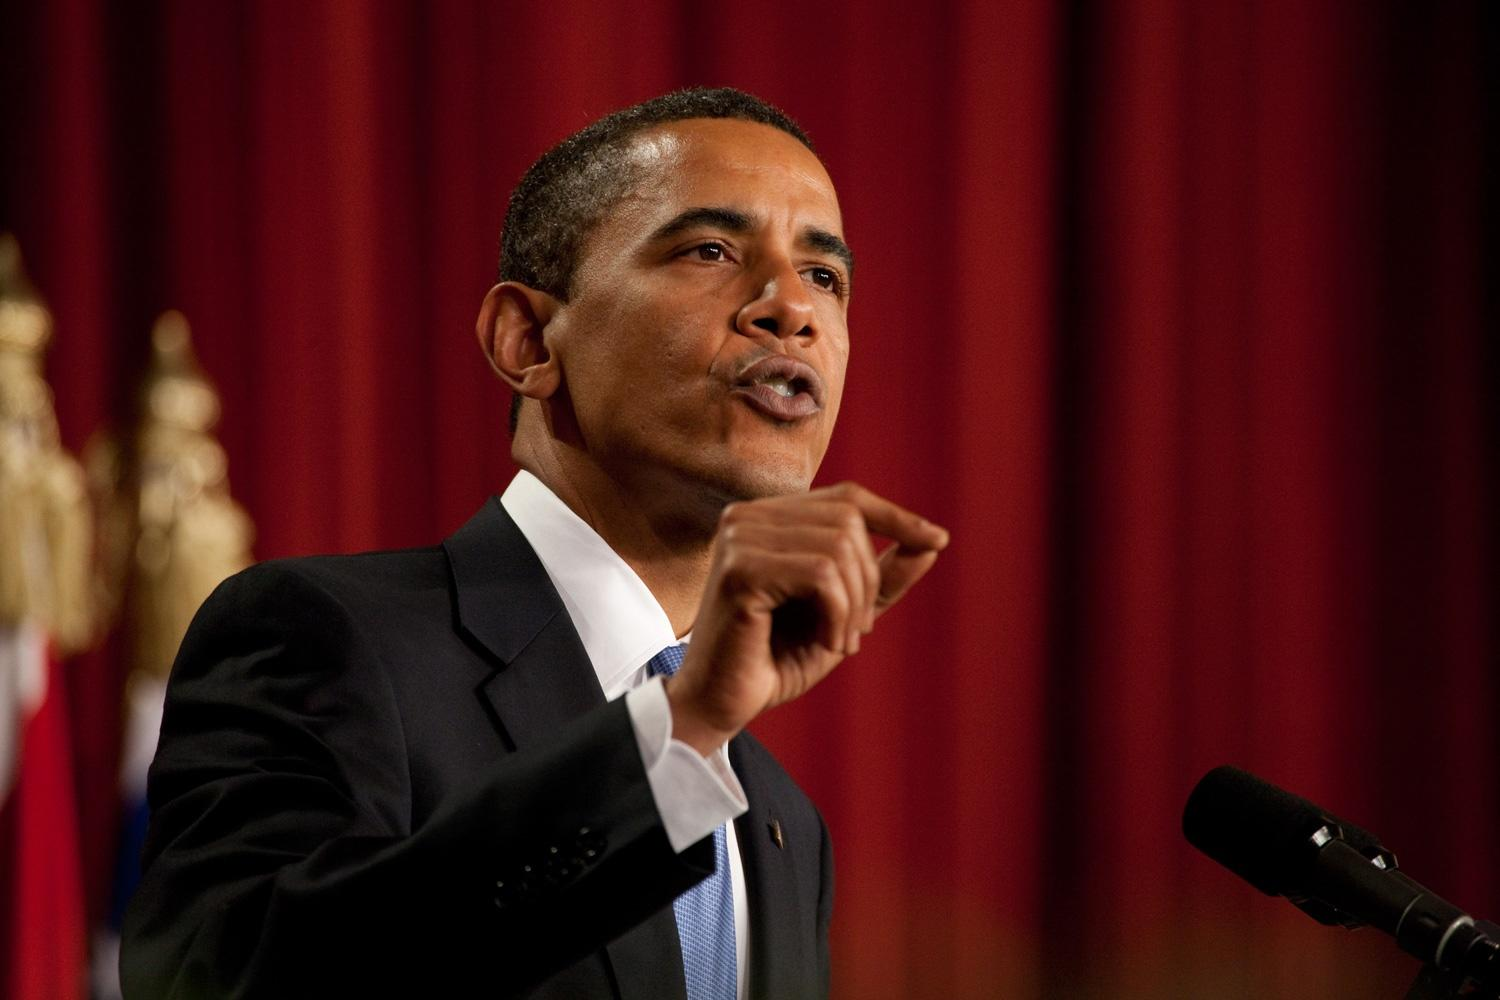 Obama asks Congress for $19 billion to overhaul U.S. 'digital defences'